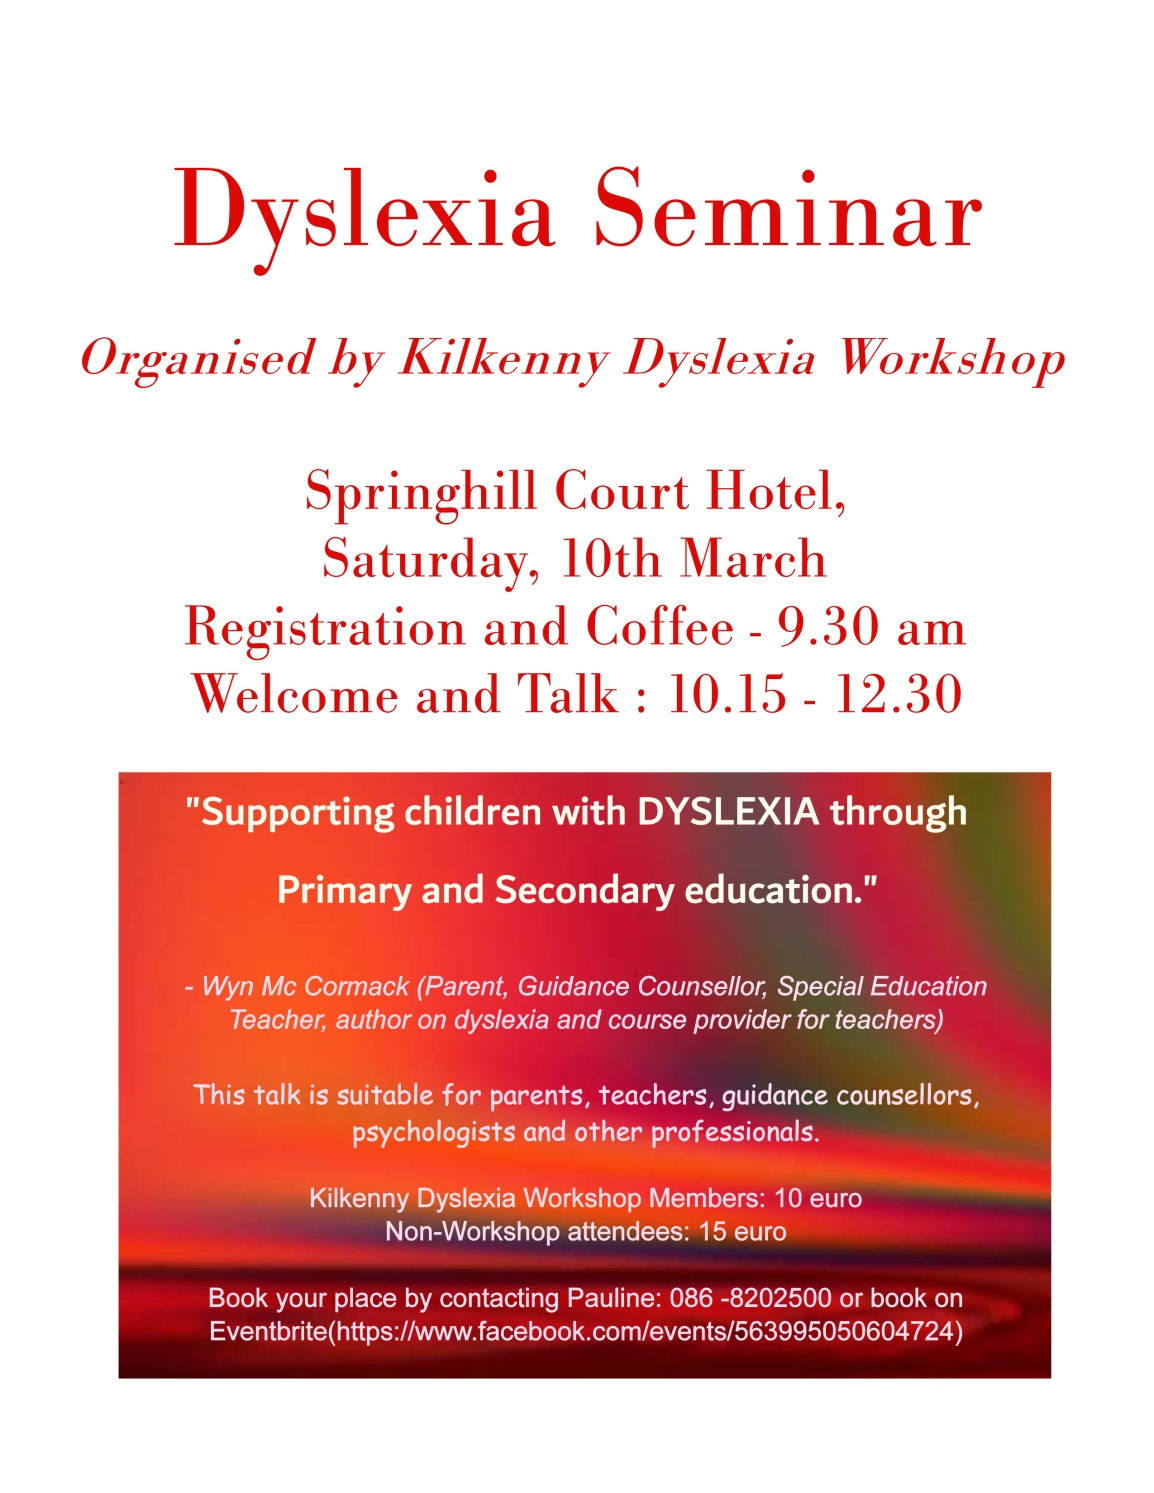 Supporting Children with Dyslexia through Primary and SecondaryEducation